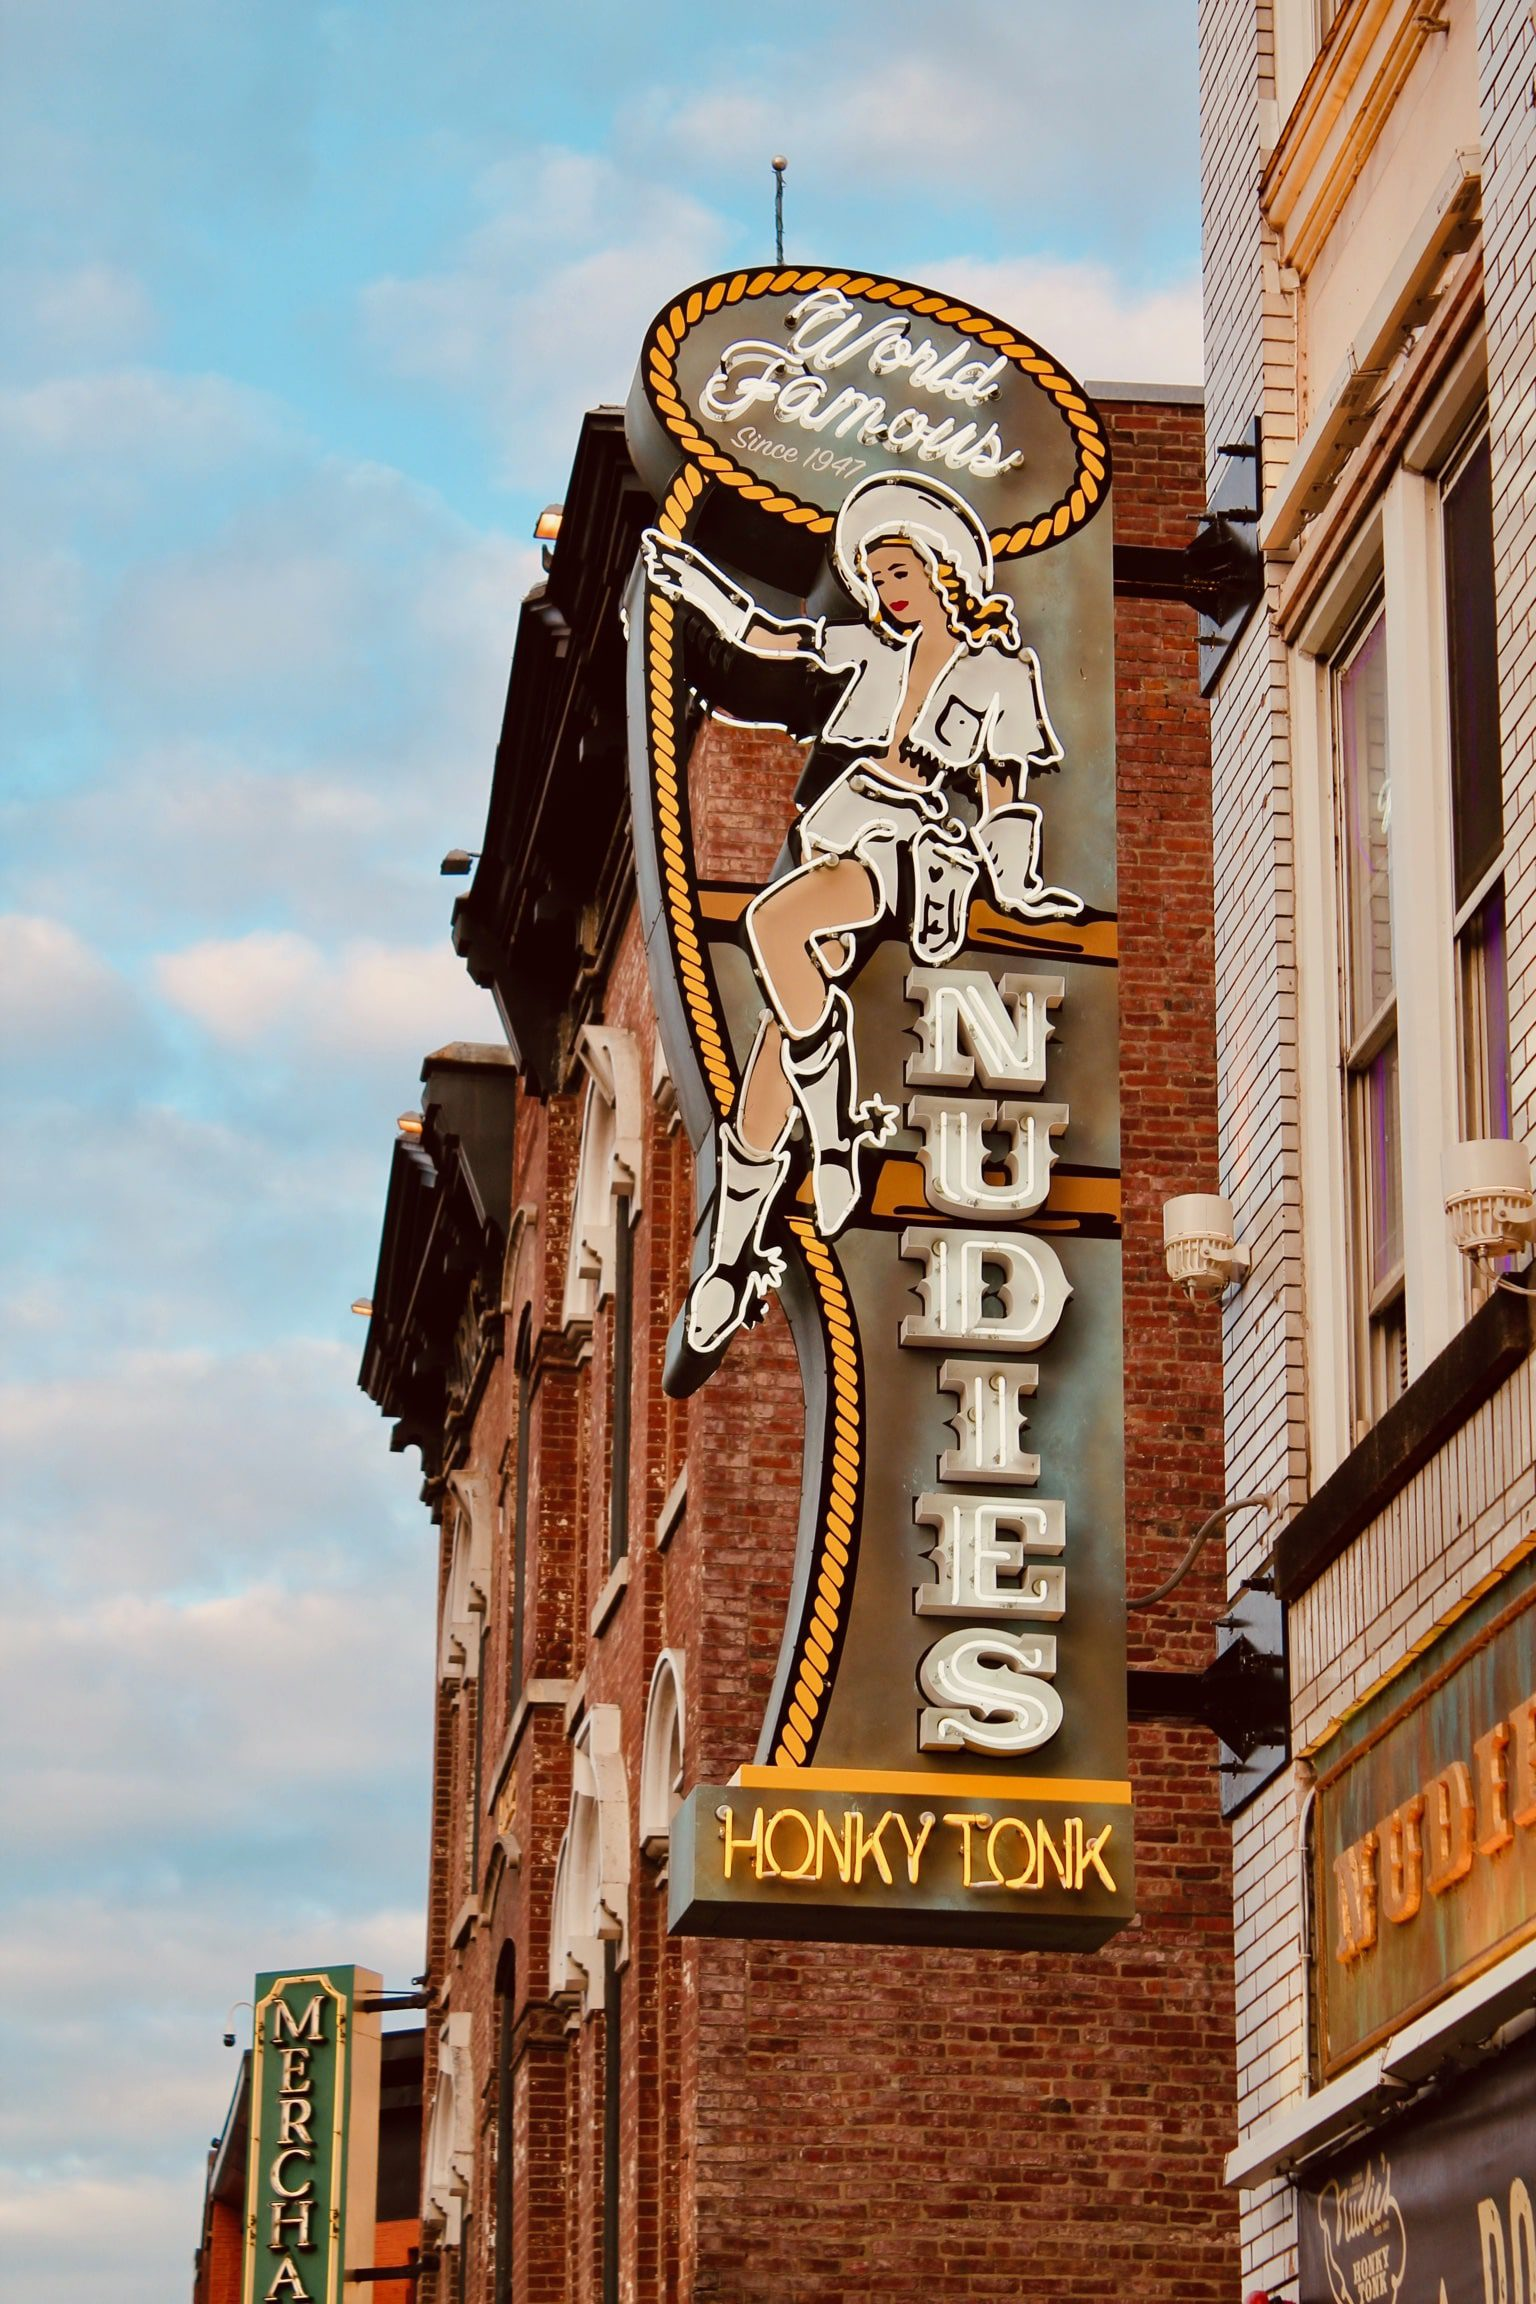 nudies honky tonk led sign with led conversion in Nashville